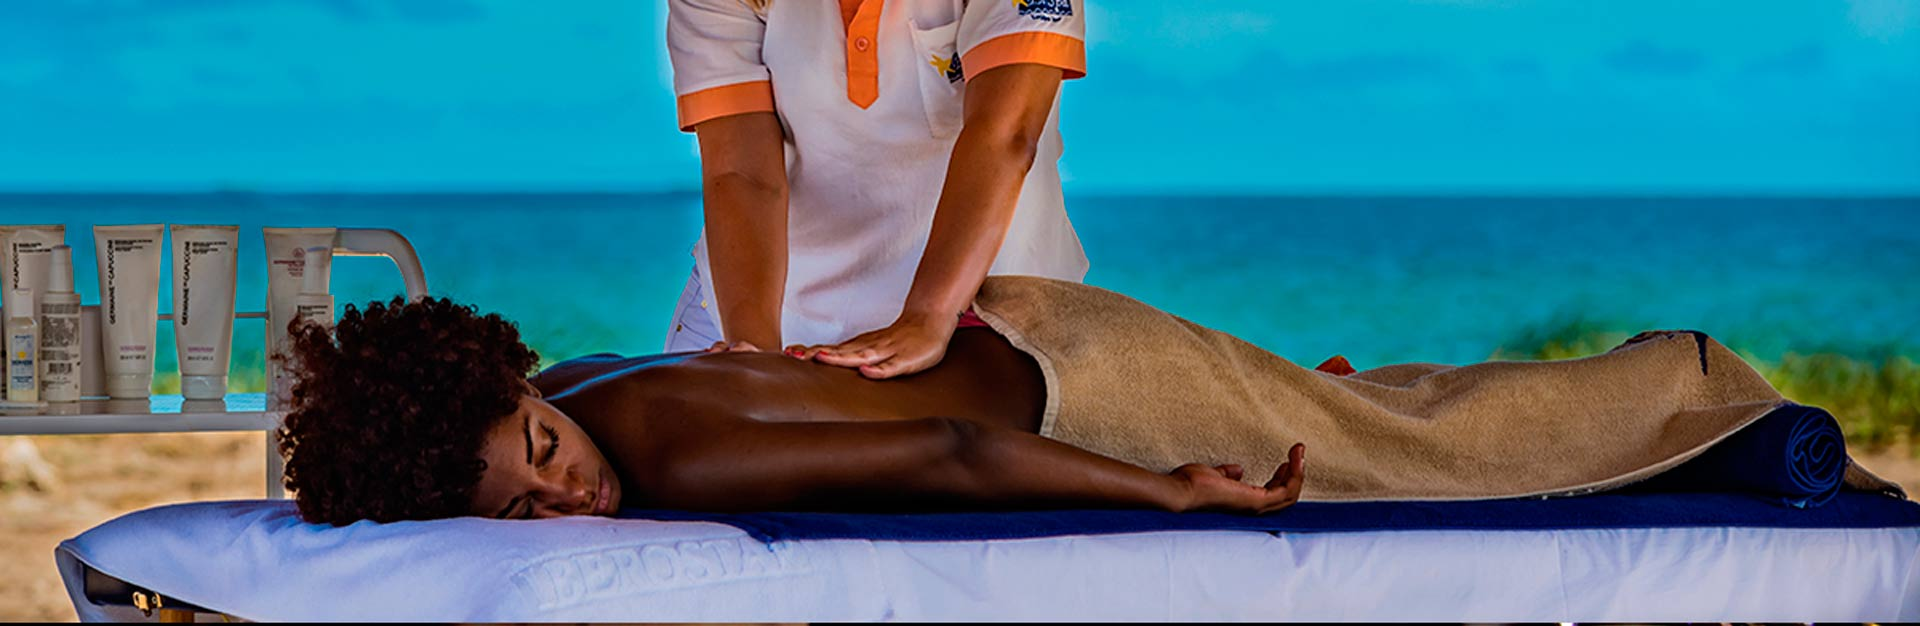 Spa, Health Tourism, Cubatravel